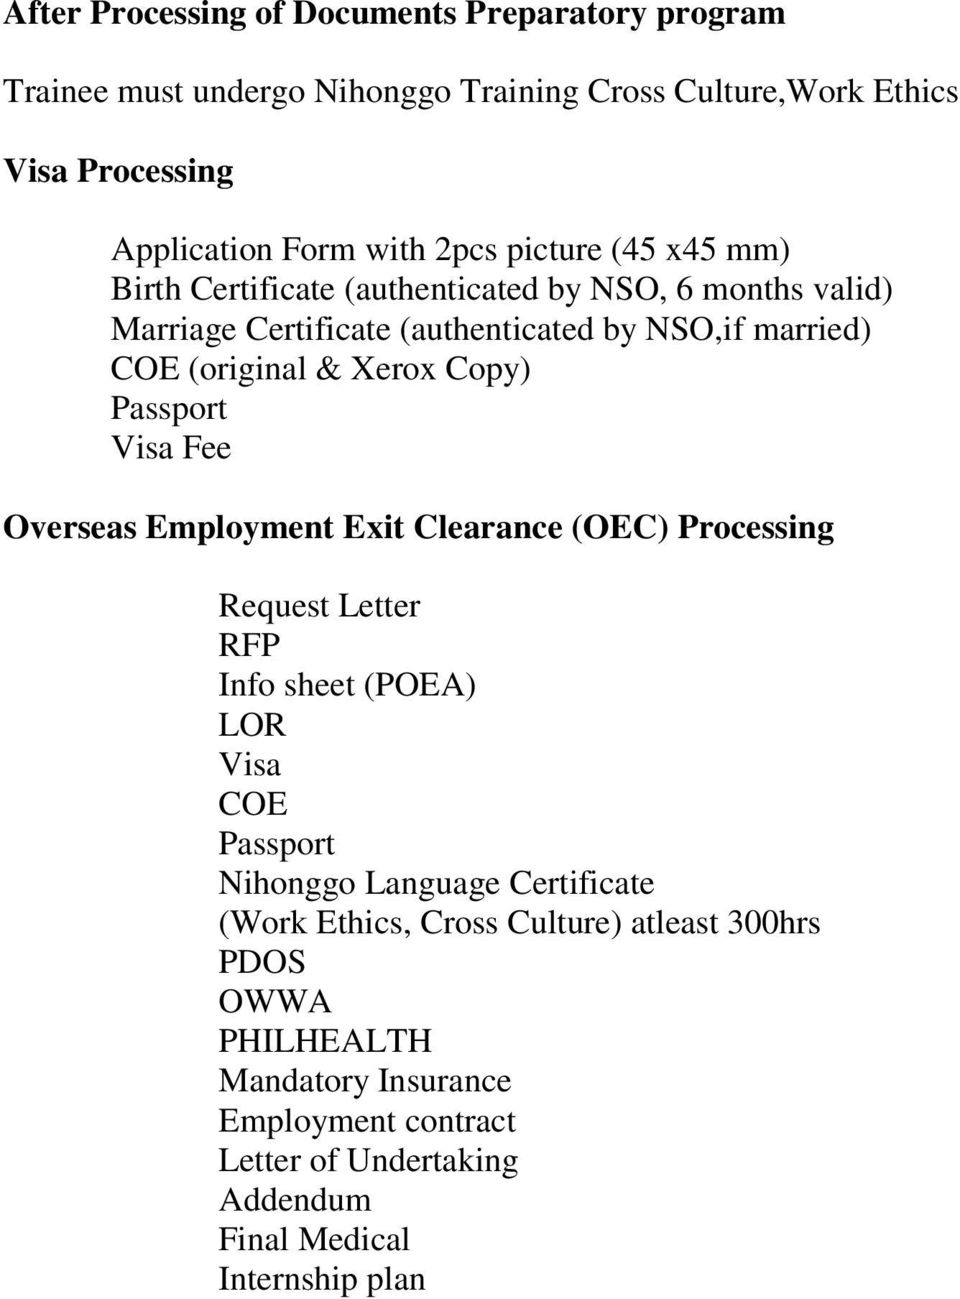 Jitco technical internship program p o e a jitco japan passport visa fee overseas employment exit clearance oec processing request letter rfp info sheet thecheapjerseys Choice Image